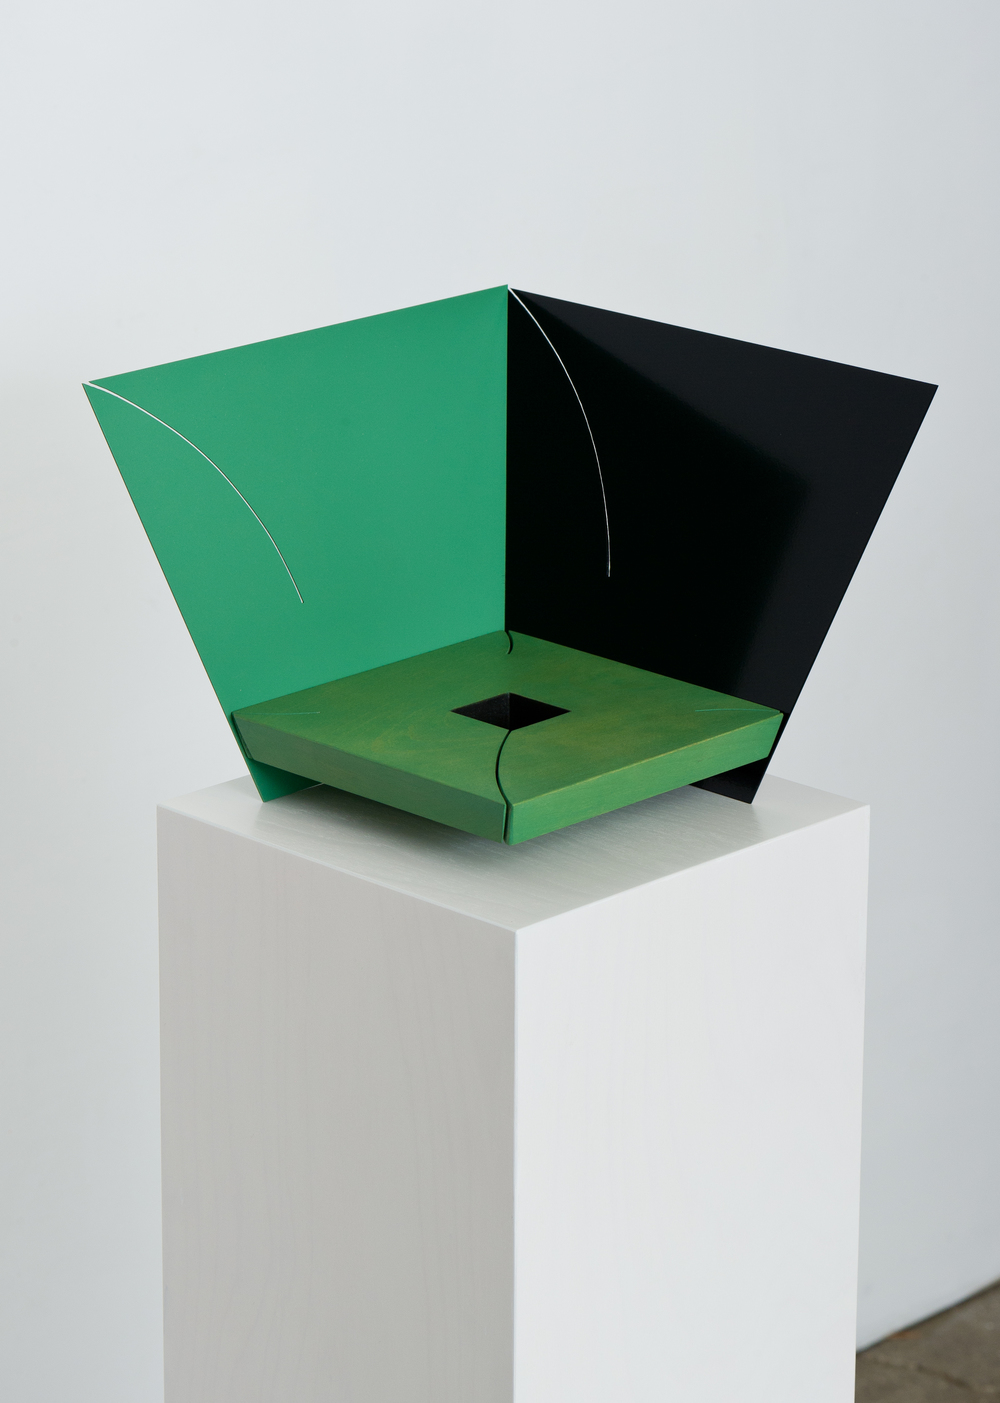 Corner (Jade) 2014 Euro-Beech hardwood, steel, copper rivets, enamel, wax 26.6 x 26.6 x 20.3 cm / 10.5 x 10.5 x 8 in Plinth: 83.8 x 22.8 x 22.8 cm / 33 x 9 x 9 in